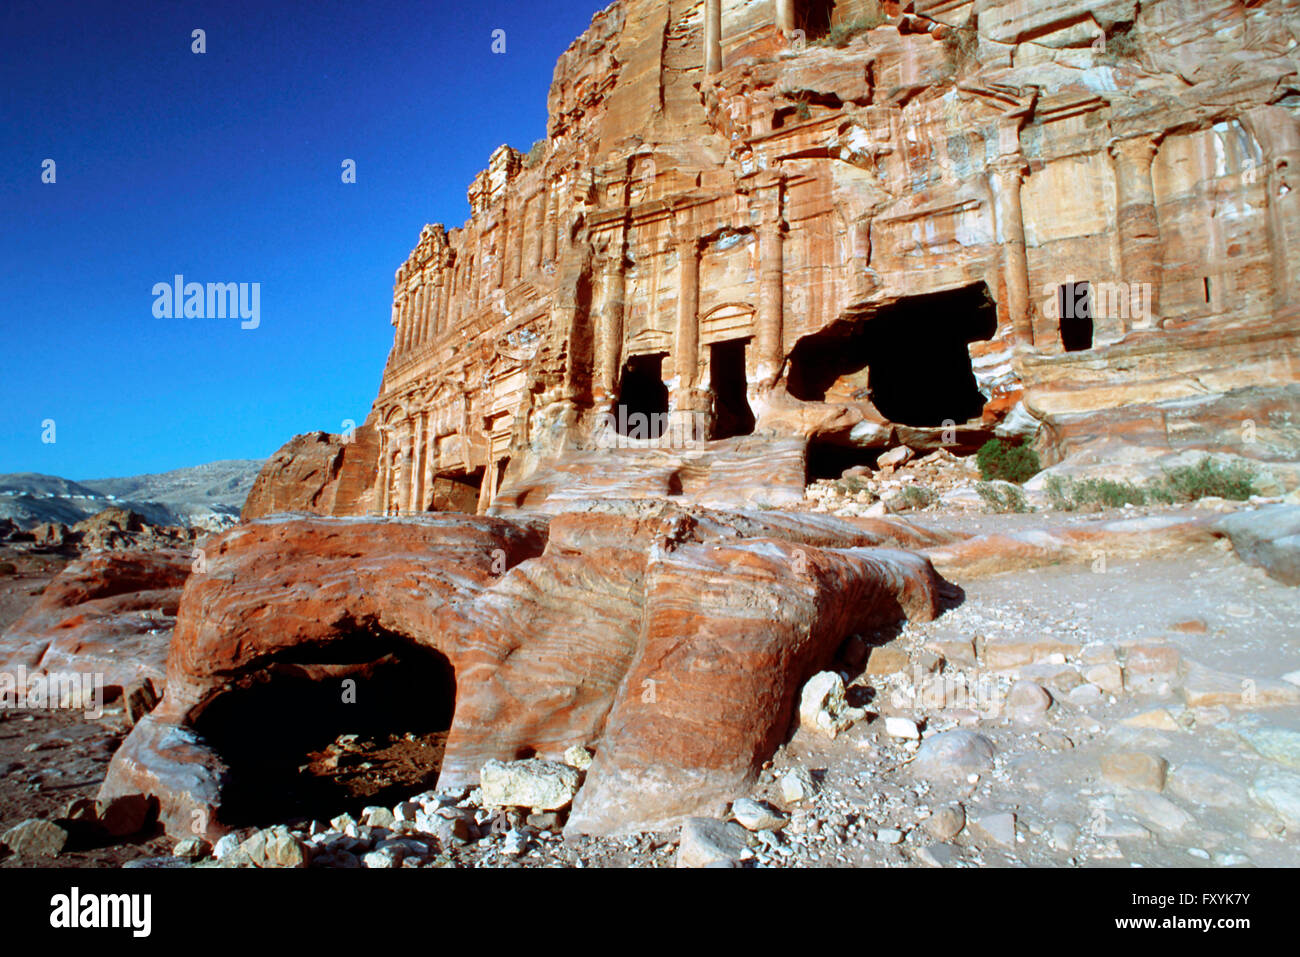 The Corinthian tomb and the Palace tomb which are part the Royal Tombs, Petra, Jordan. - Stock Image